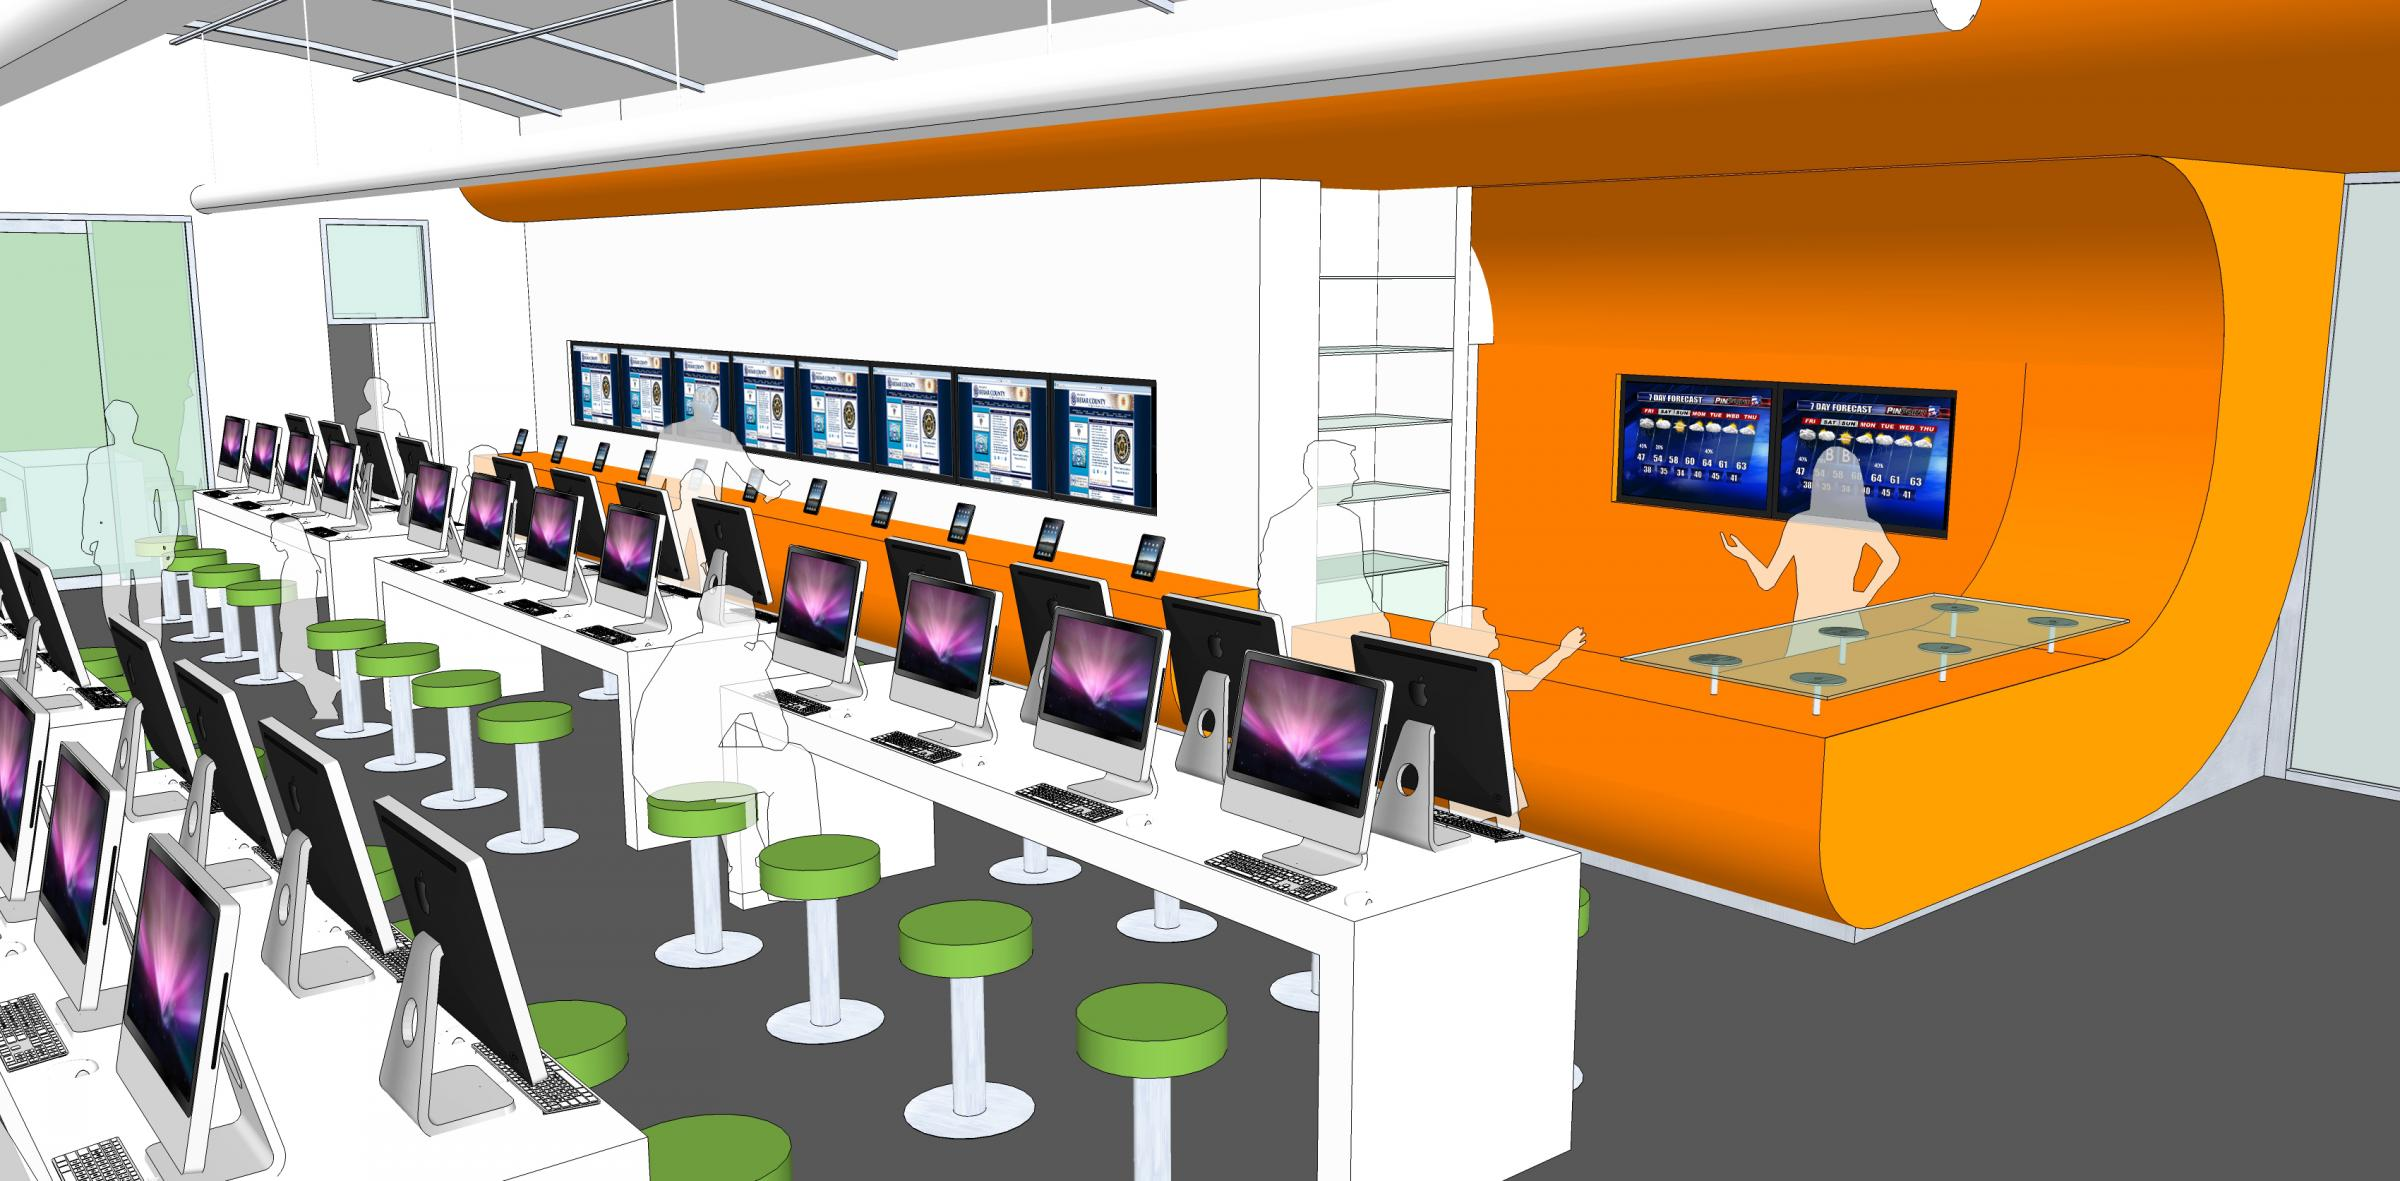 Media Stations Conceptual Design Of The Bookless Library